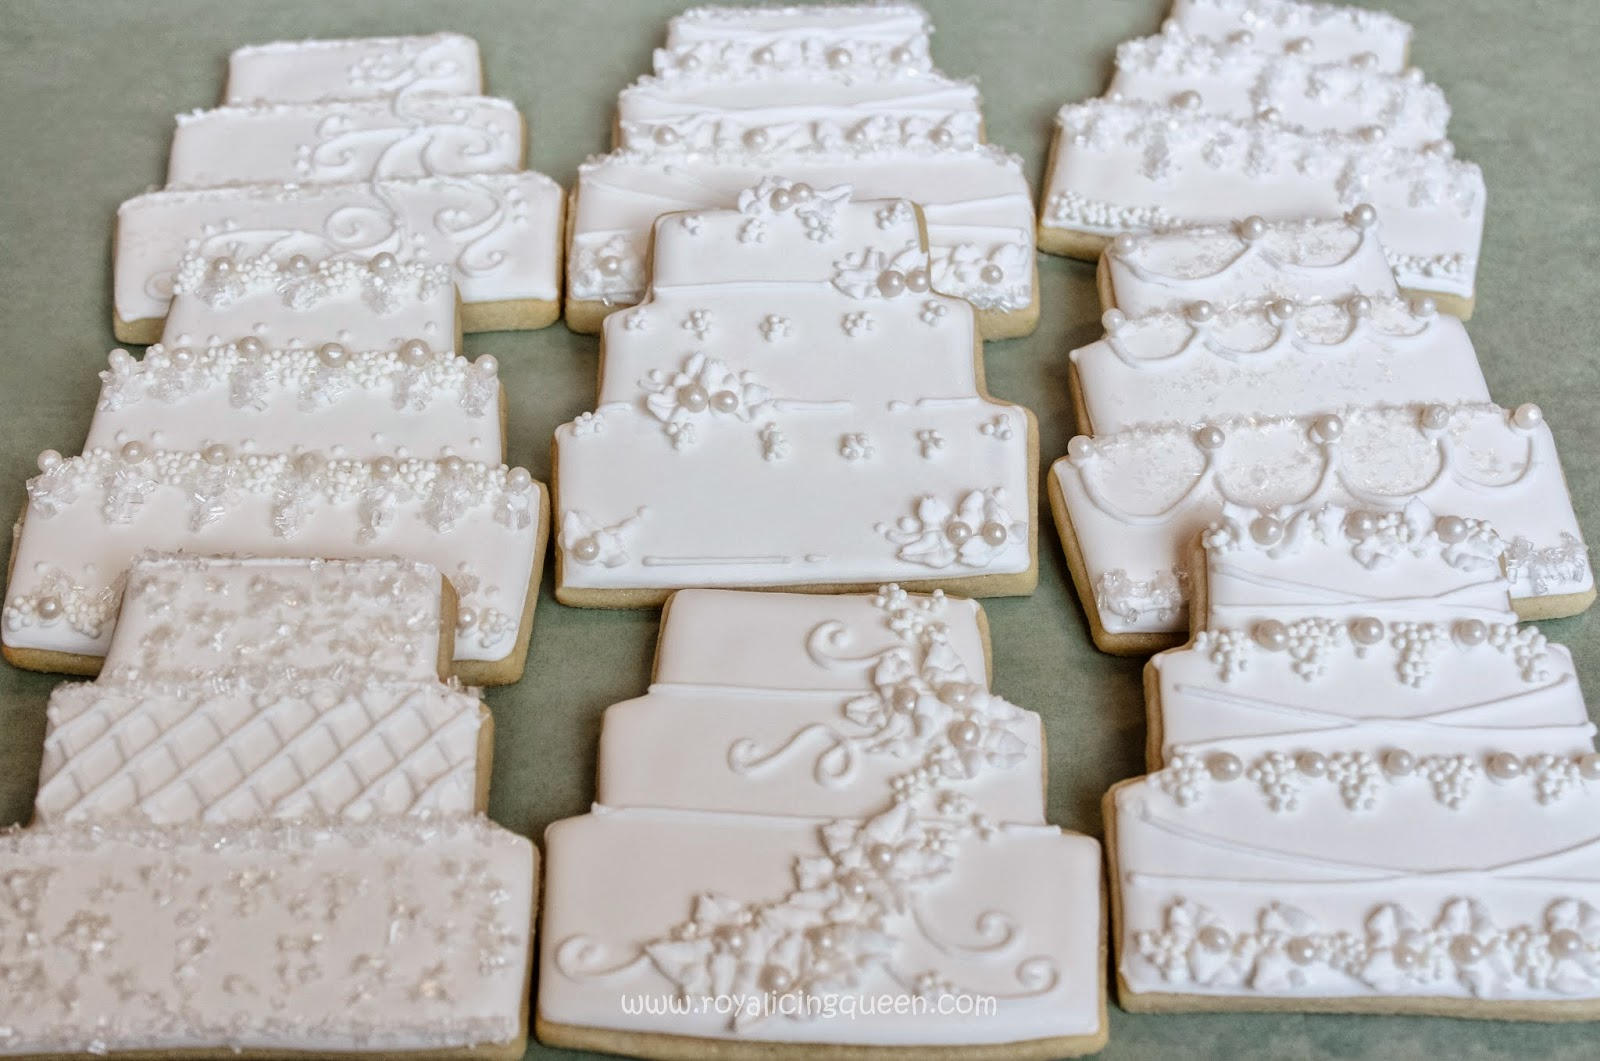 The Royal Icing Queen: Wedding Cake Cookies